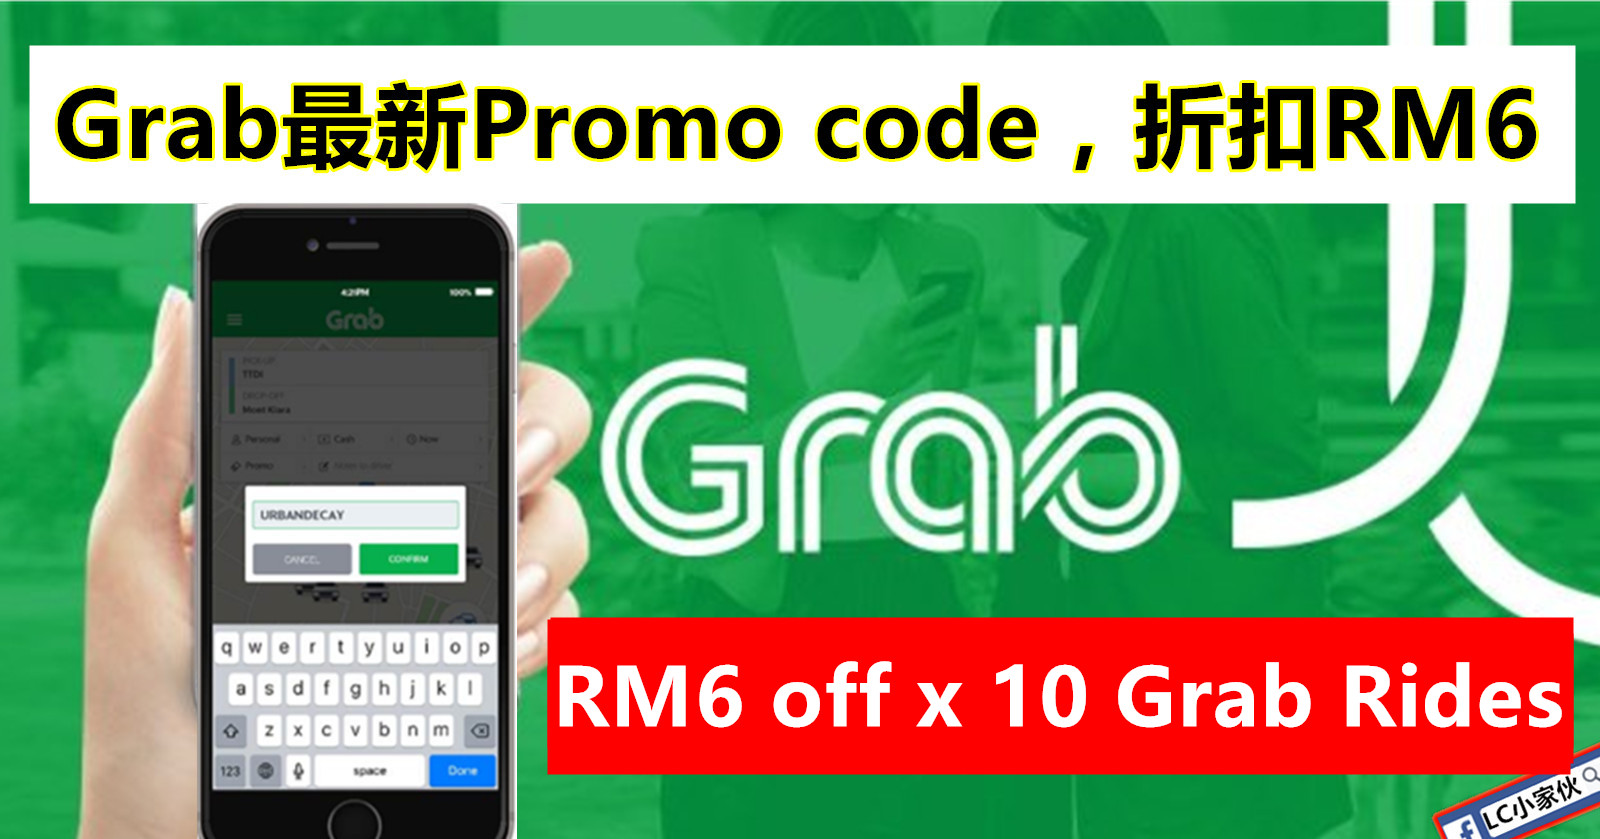 My grab one coupons